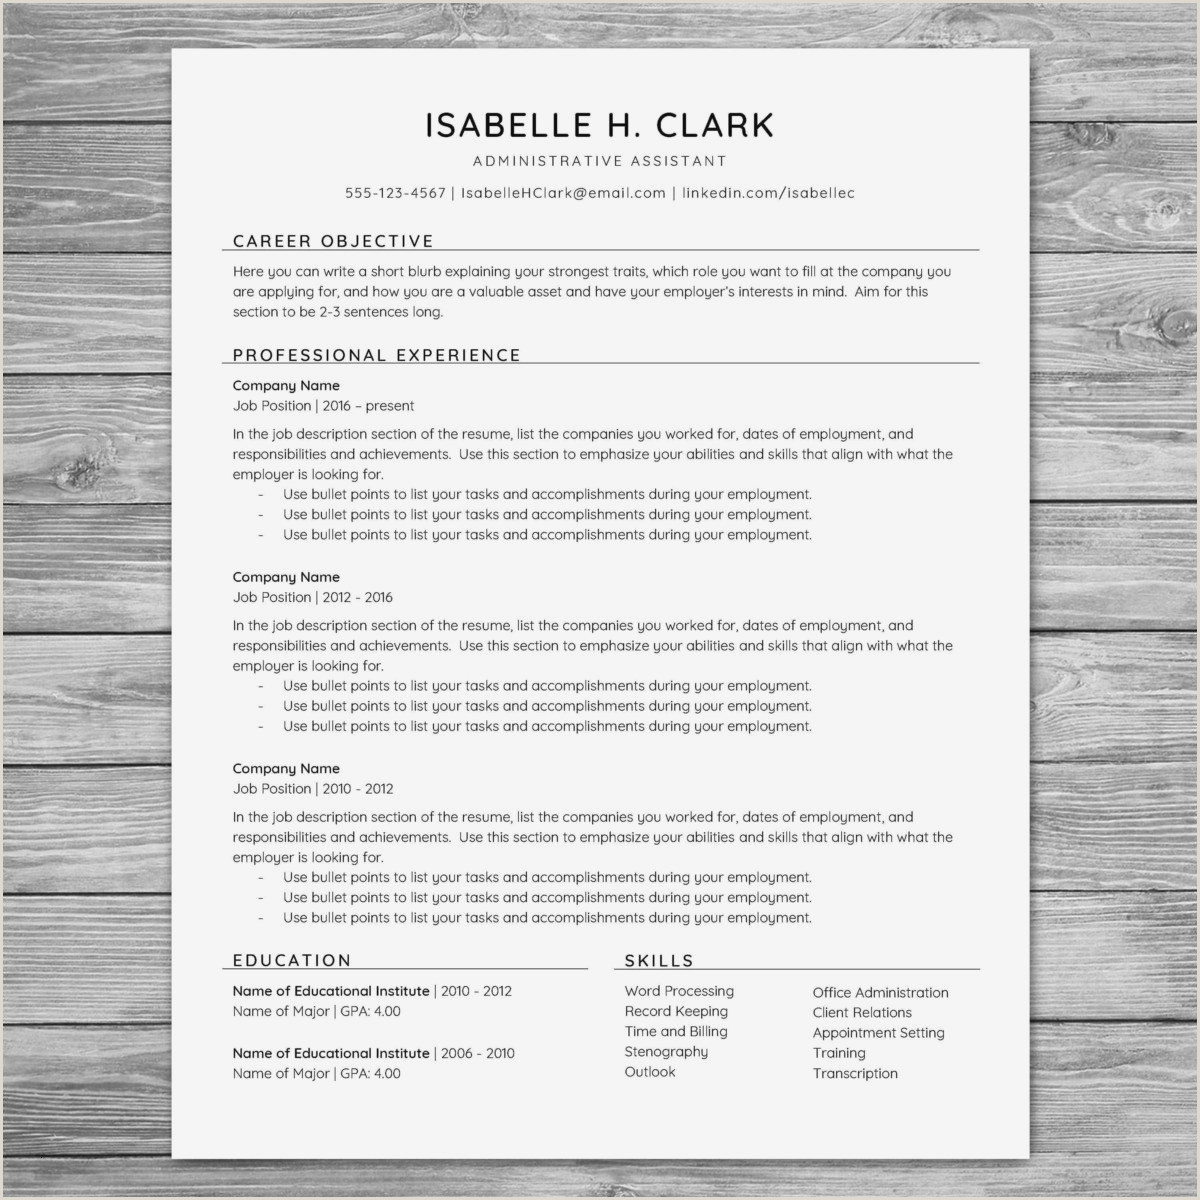 Executive assistant Resume Training assistant Resume Cover Letter Unique Cool 4 Letter